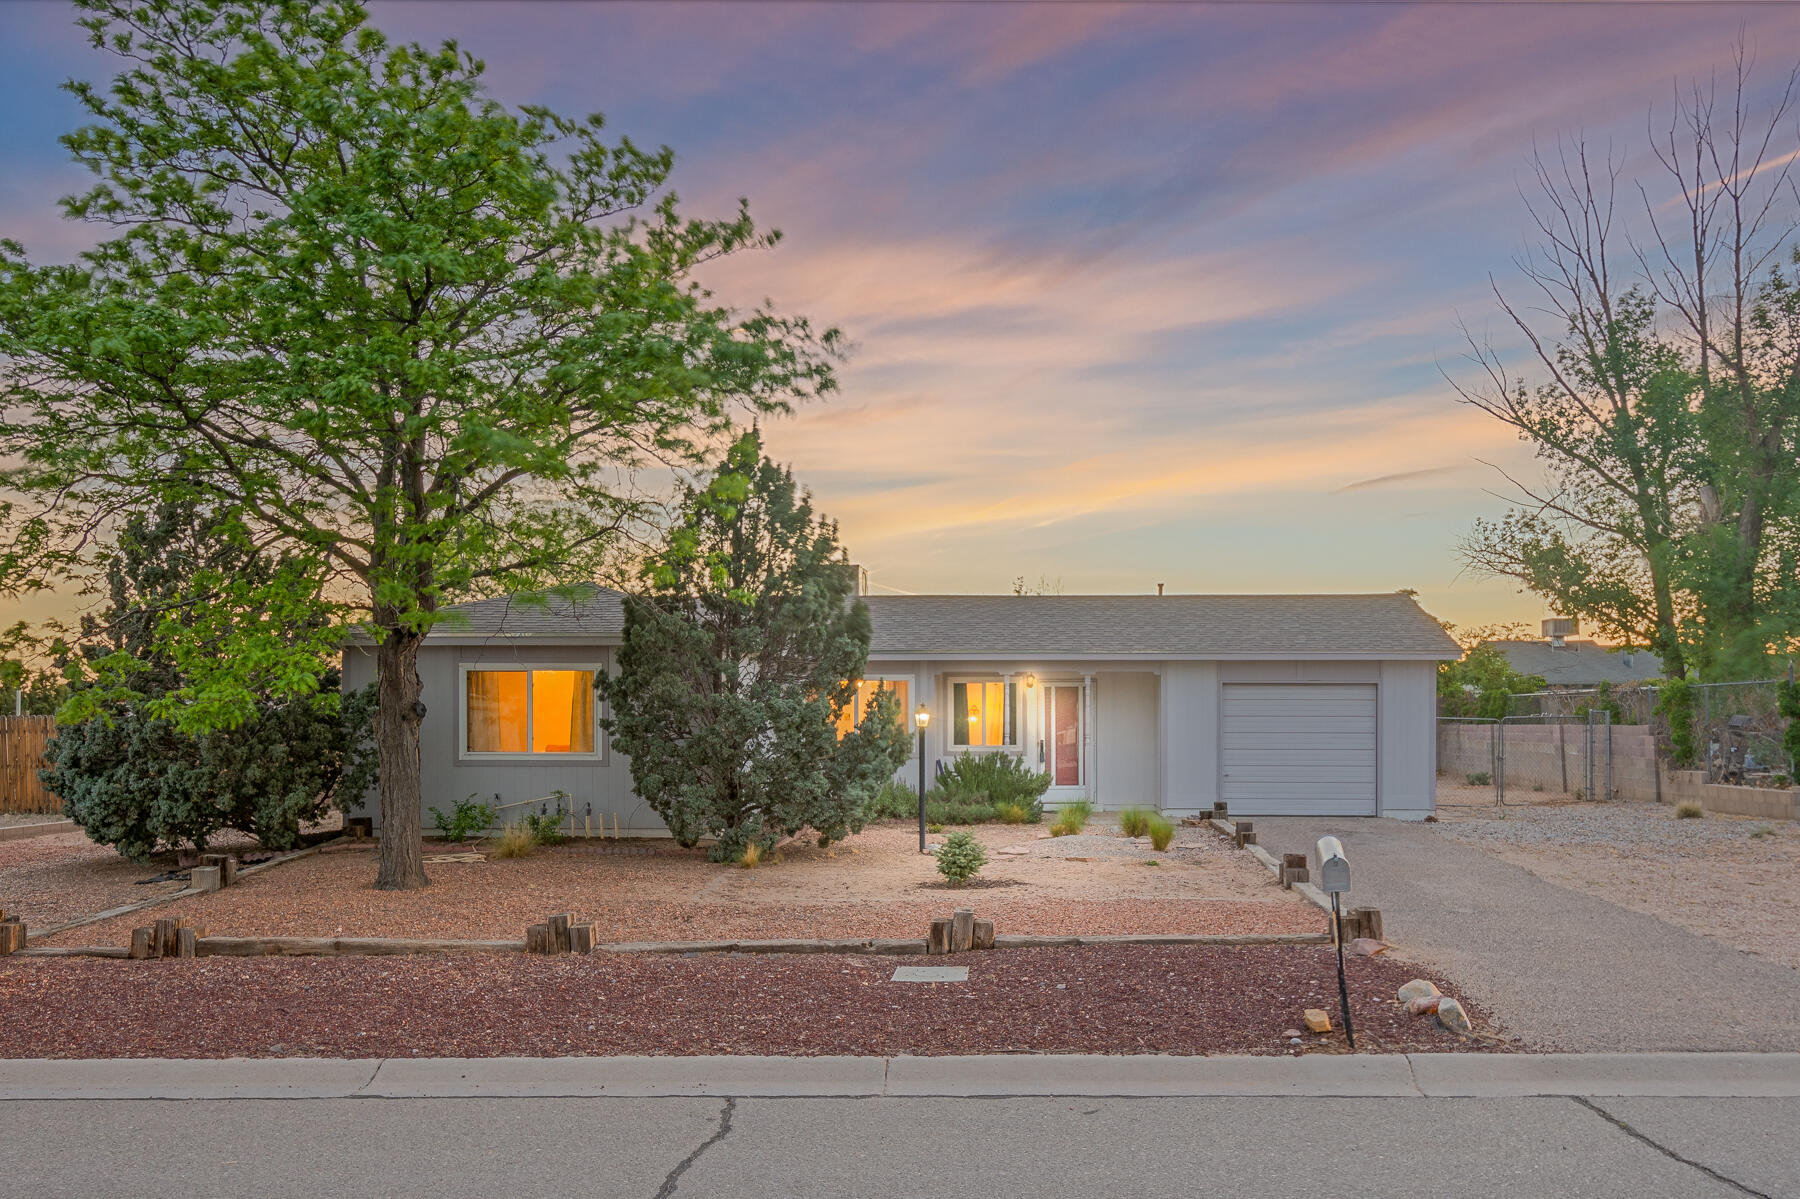 WOW - this charming, well maintained bungalow in Rio Rancho is not going to last long! New beautiful laminate floors grace the cozy living and dining rooms. Other notable improvements include a new furnace (3/2021), a new(er) roof (5 years old), a new(er) Mastercool (5 years old) and windows replaced in 2006. Need room for multiple vehicles or play space? A large backyard with backyard access on BOTH sides of this lot gives you plenty of room. This is a great investment opportunity - where it's your first home, your retirement home or anything in between, this adorable home is waiting for you.